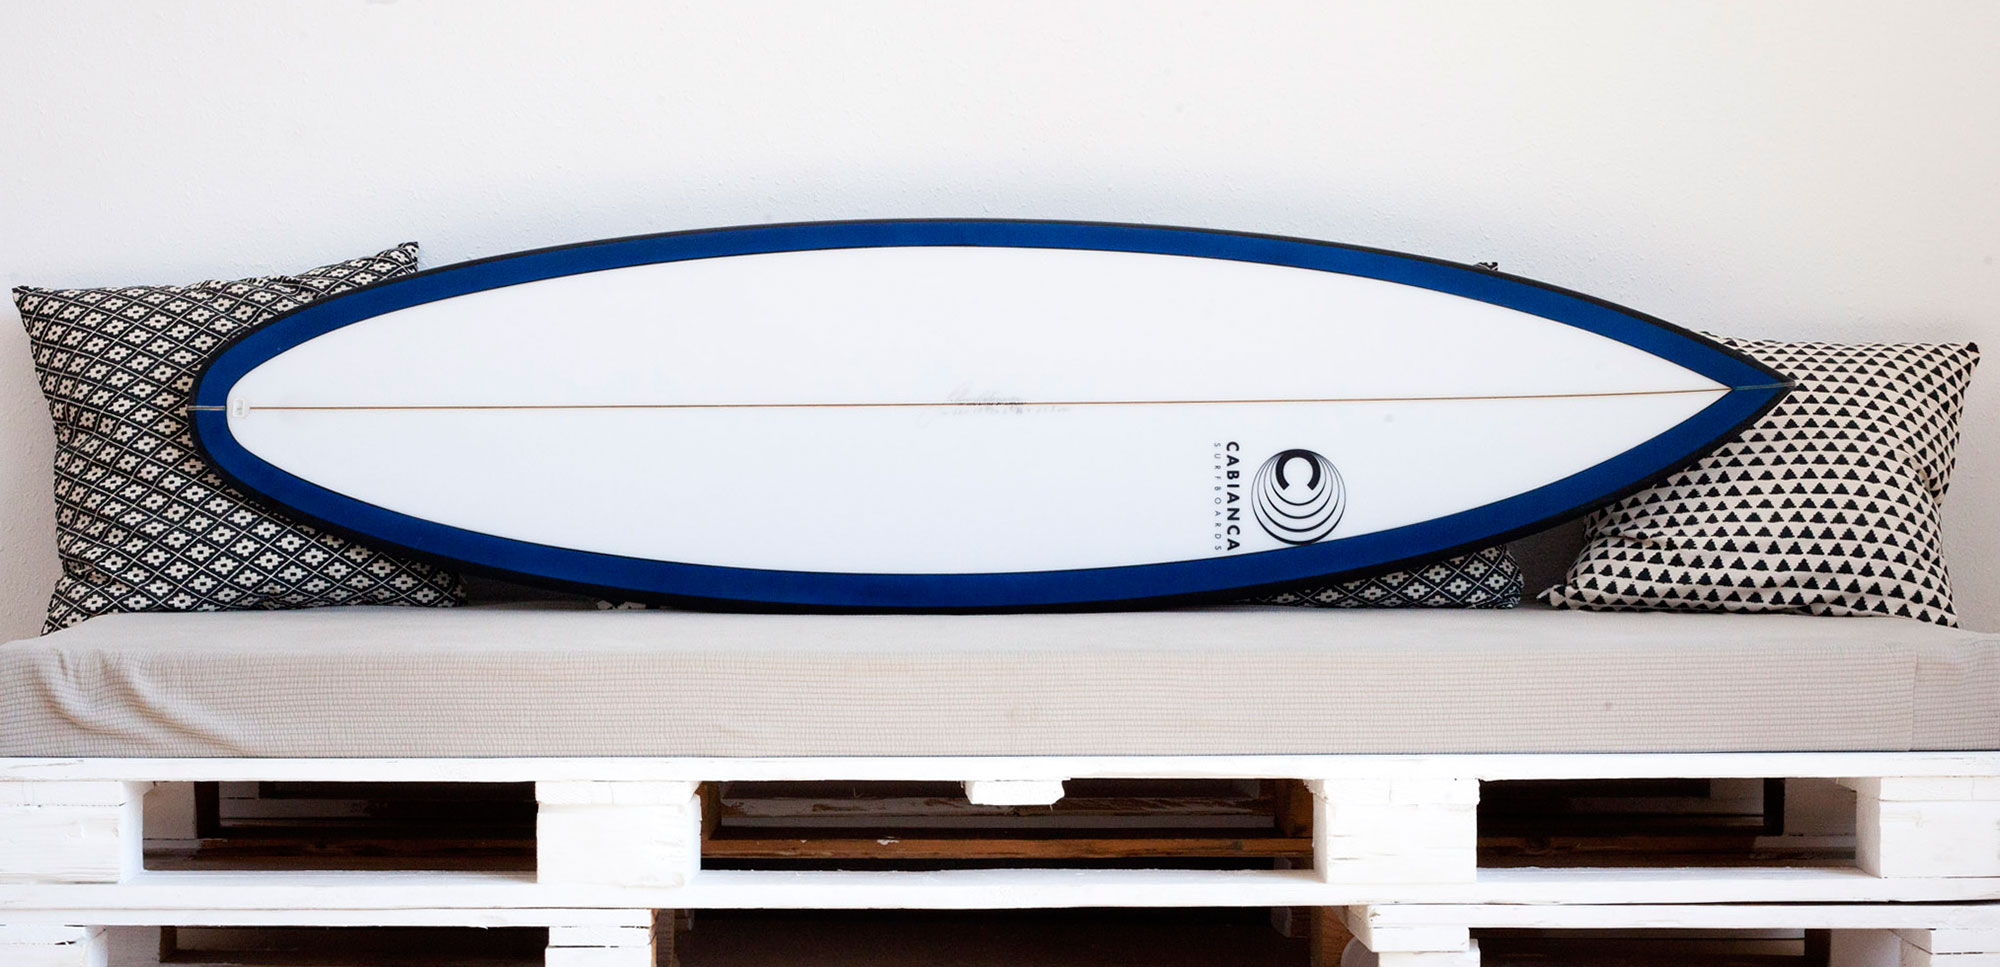 Cabianca Surfboards DFK